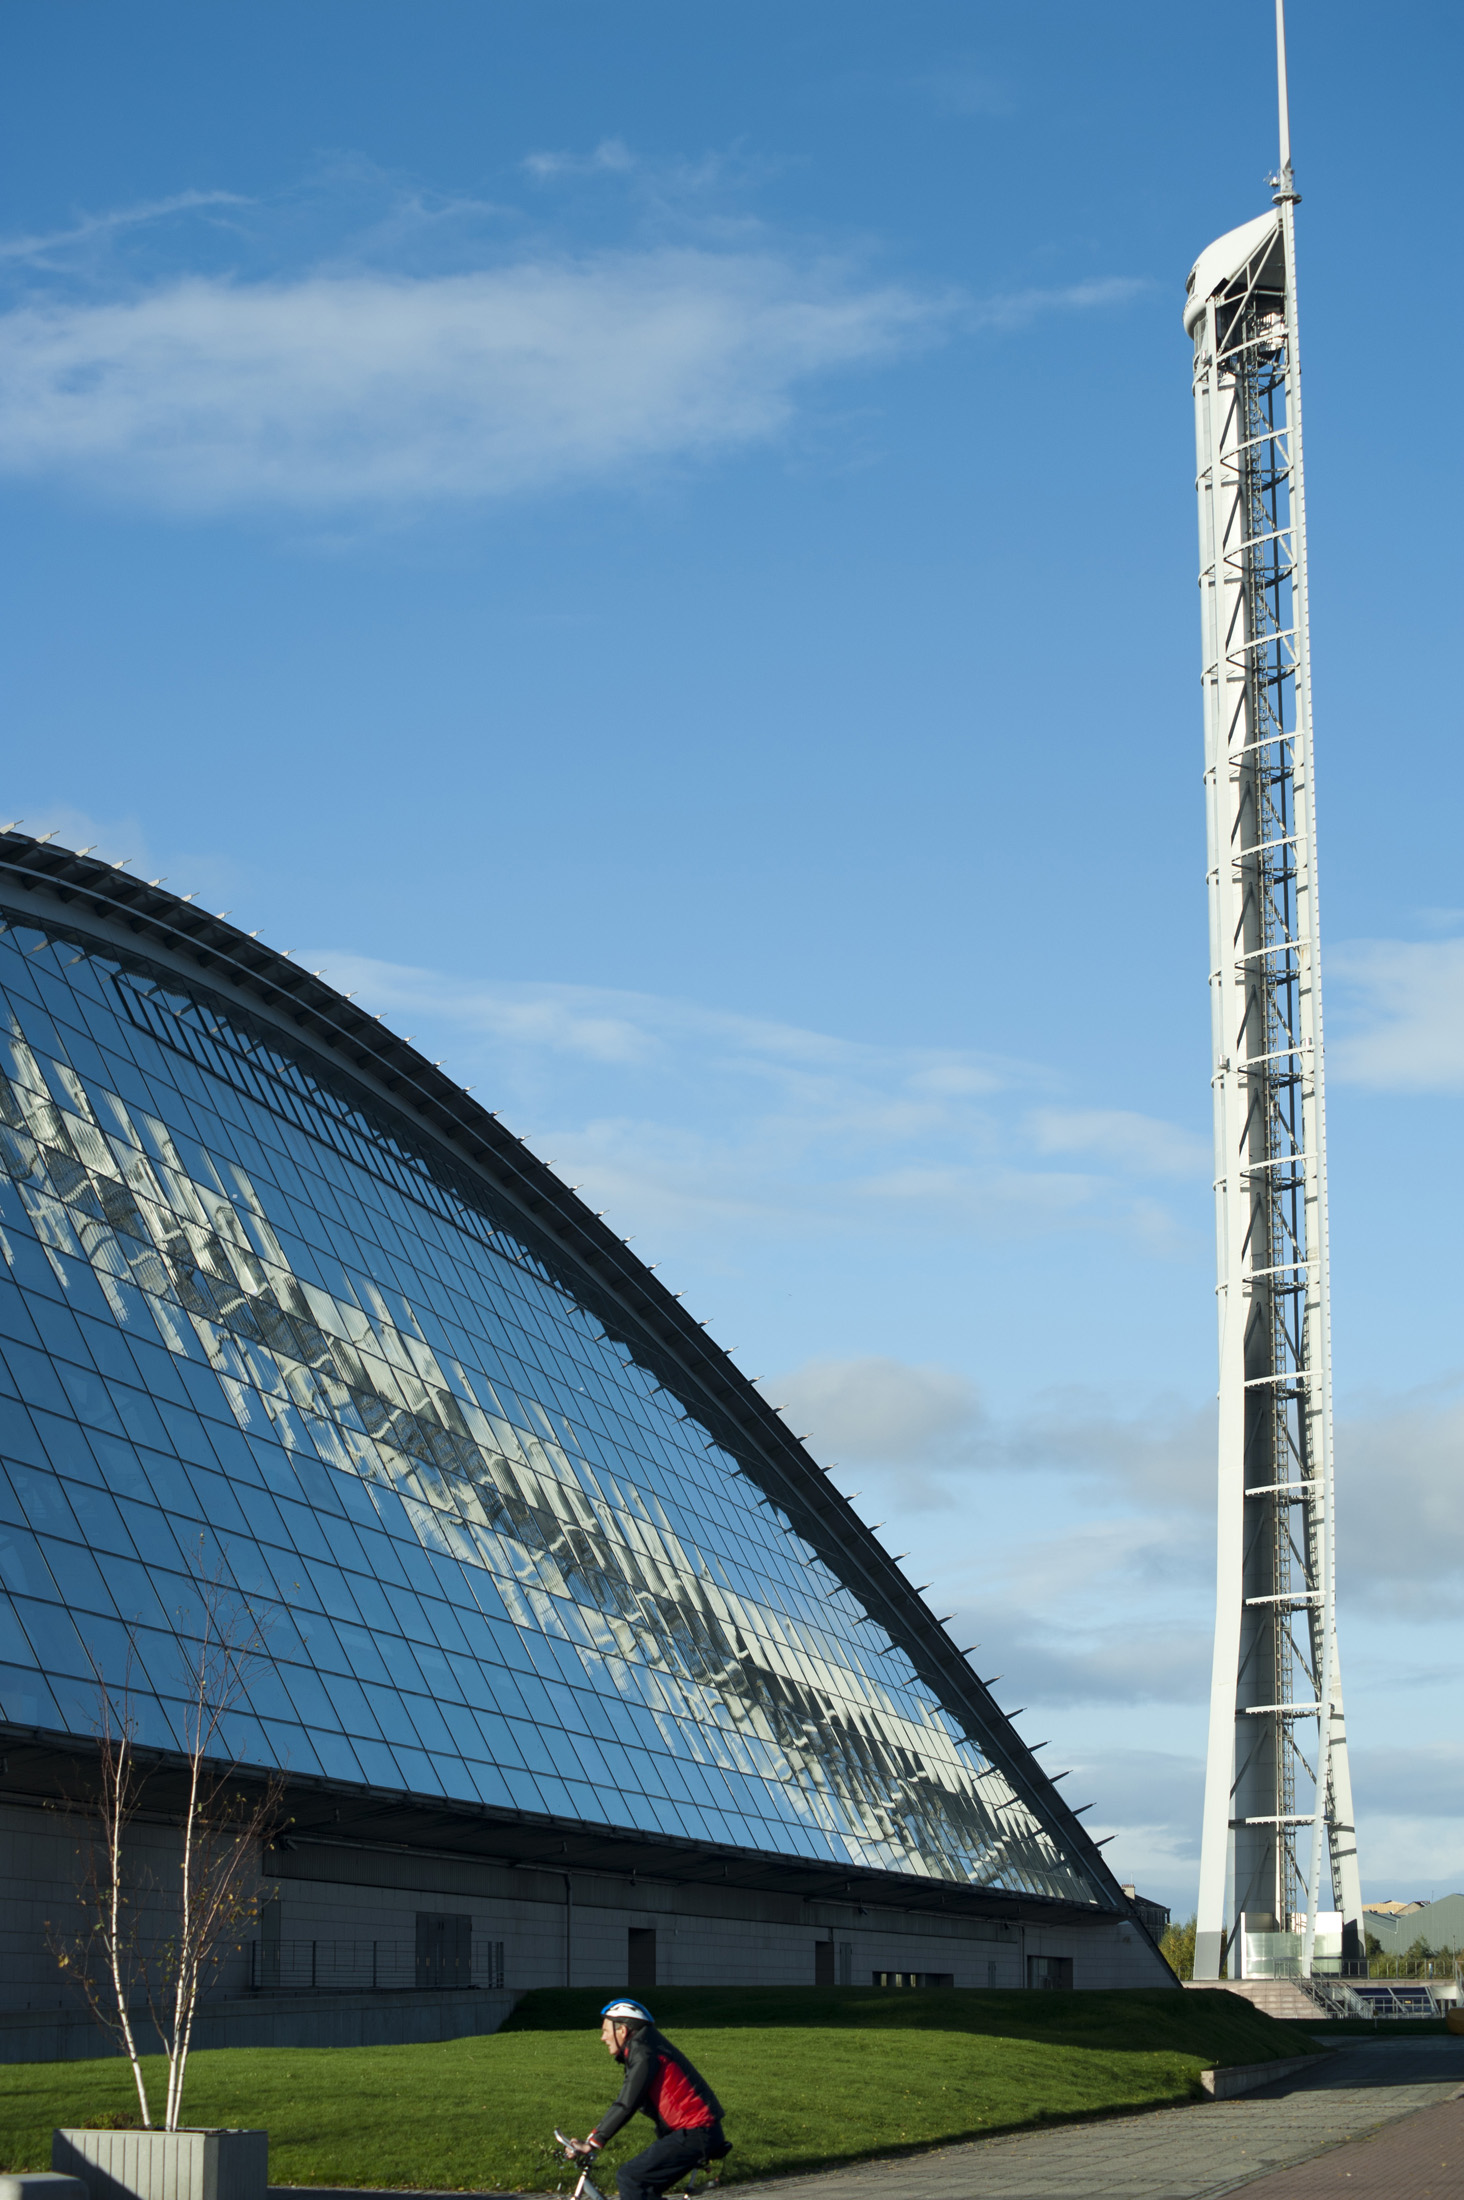 glasgow science centre and glasgow tower on a sunny day